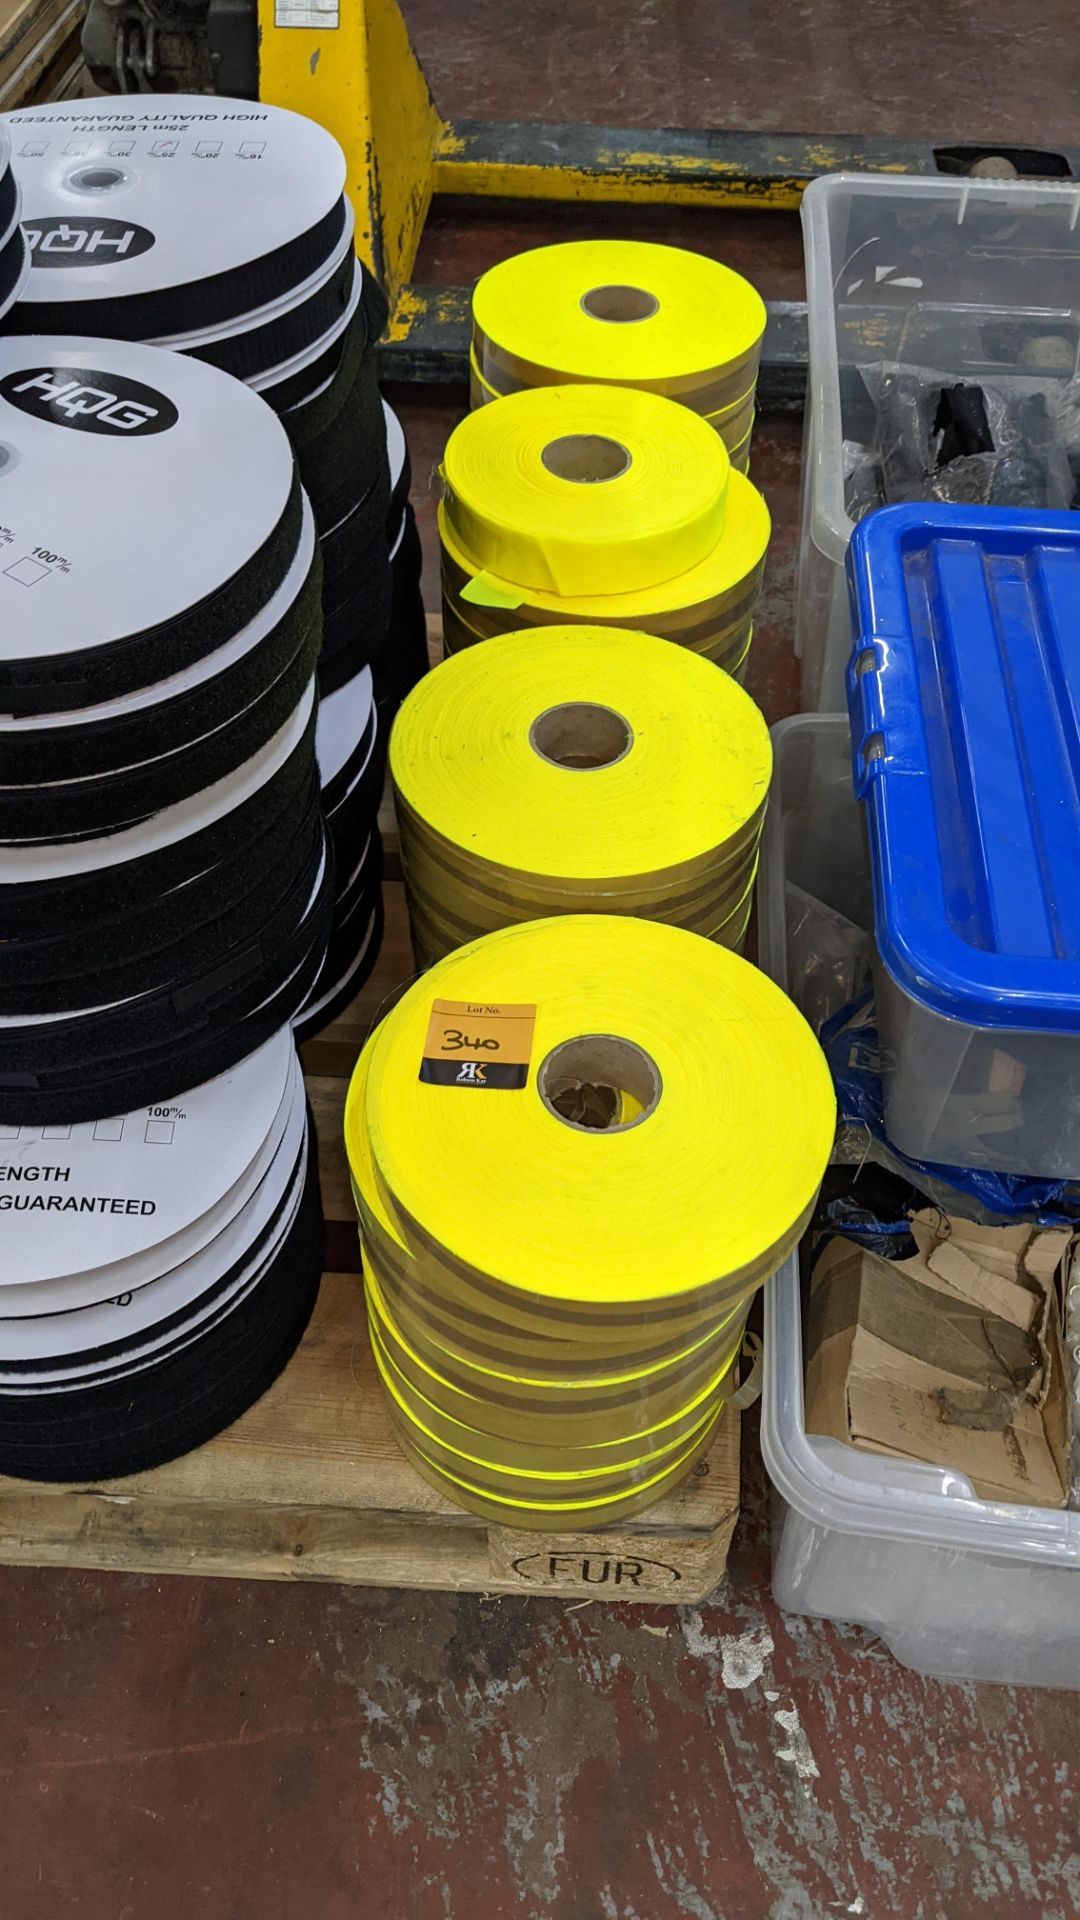 4 stacks of bright yellow tape/reflective material